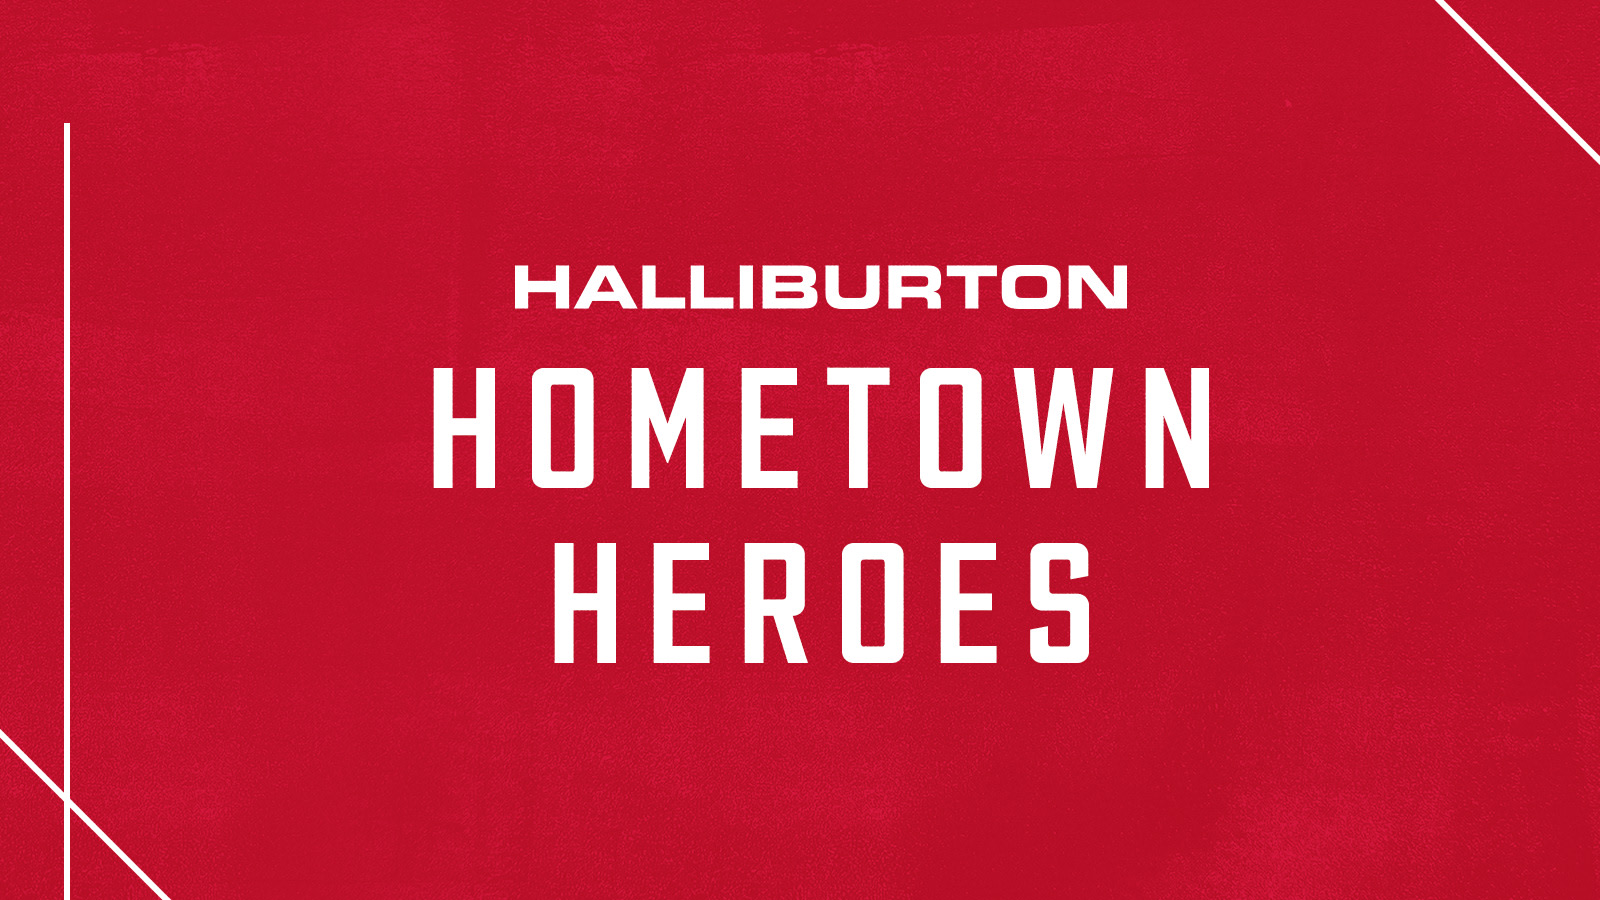 Through The Halliburton Hometown Hero Program Members Of Greater Houston Community Are Invited To Nominate A Local Charity That Is Going Above And